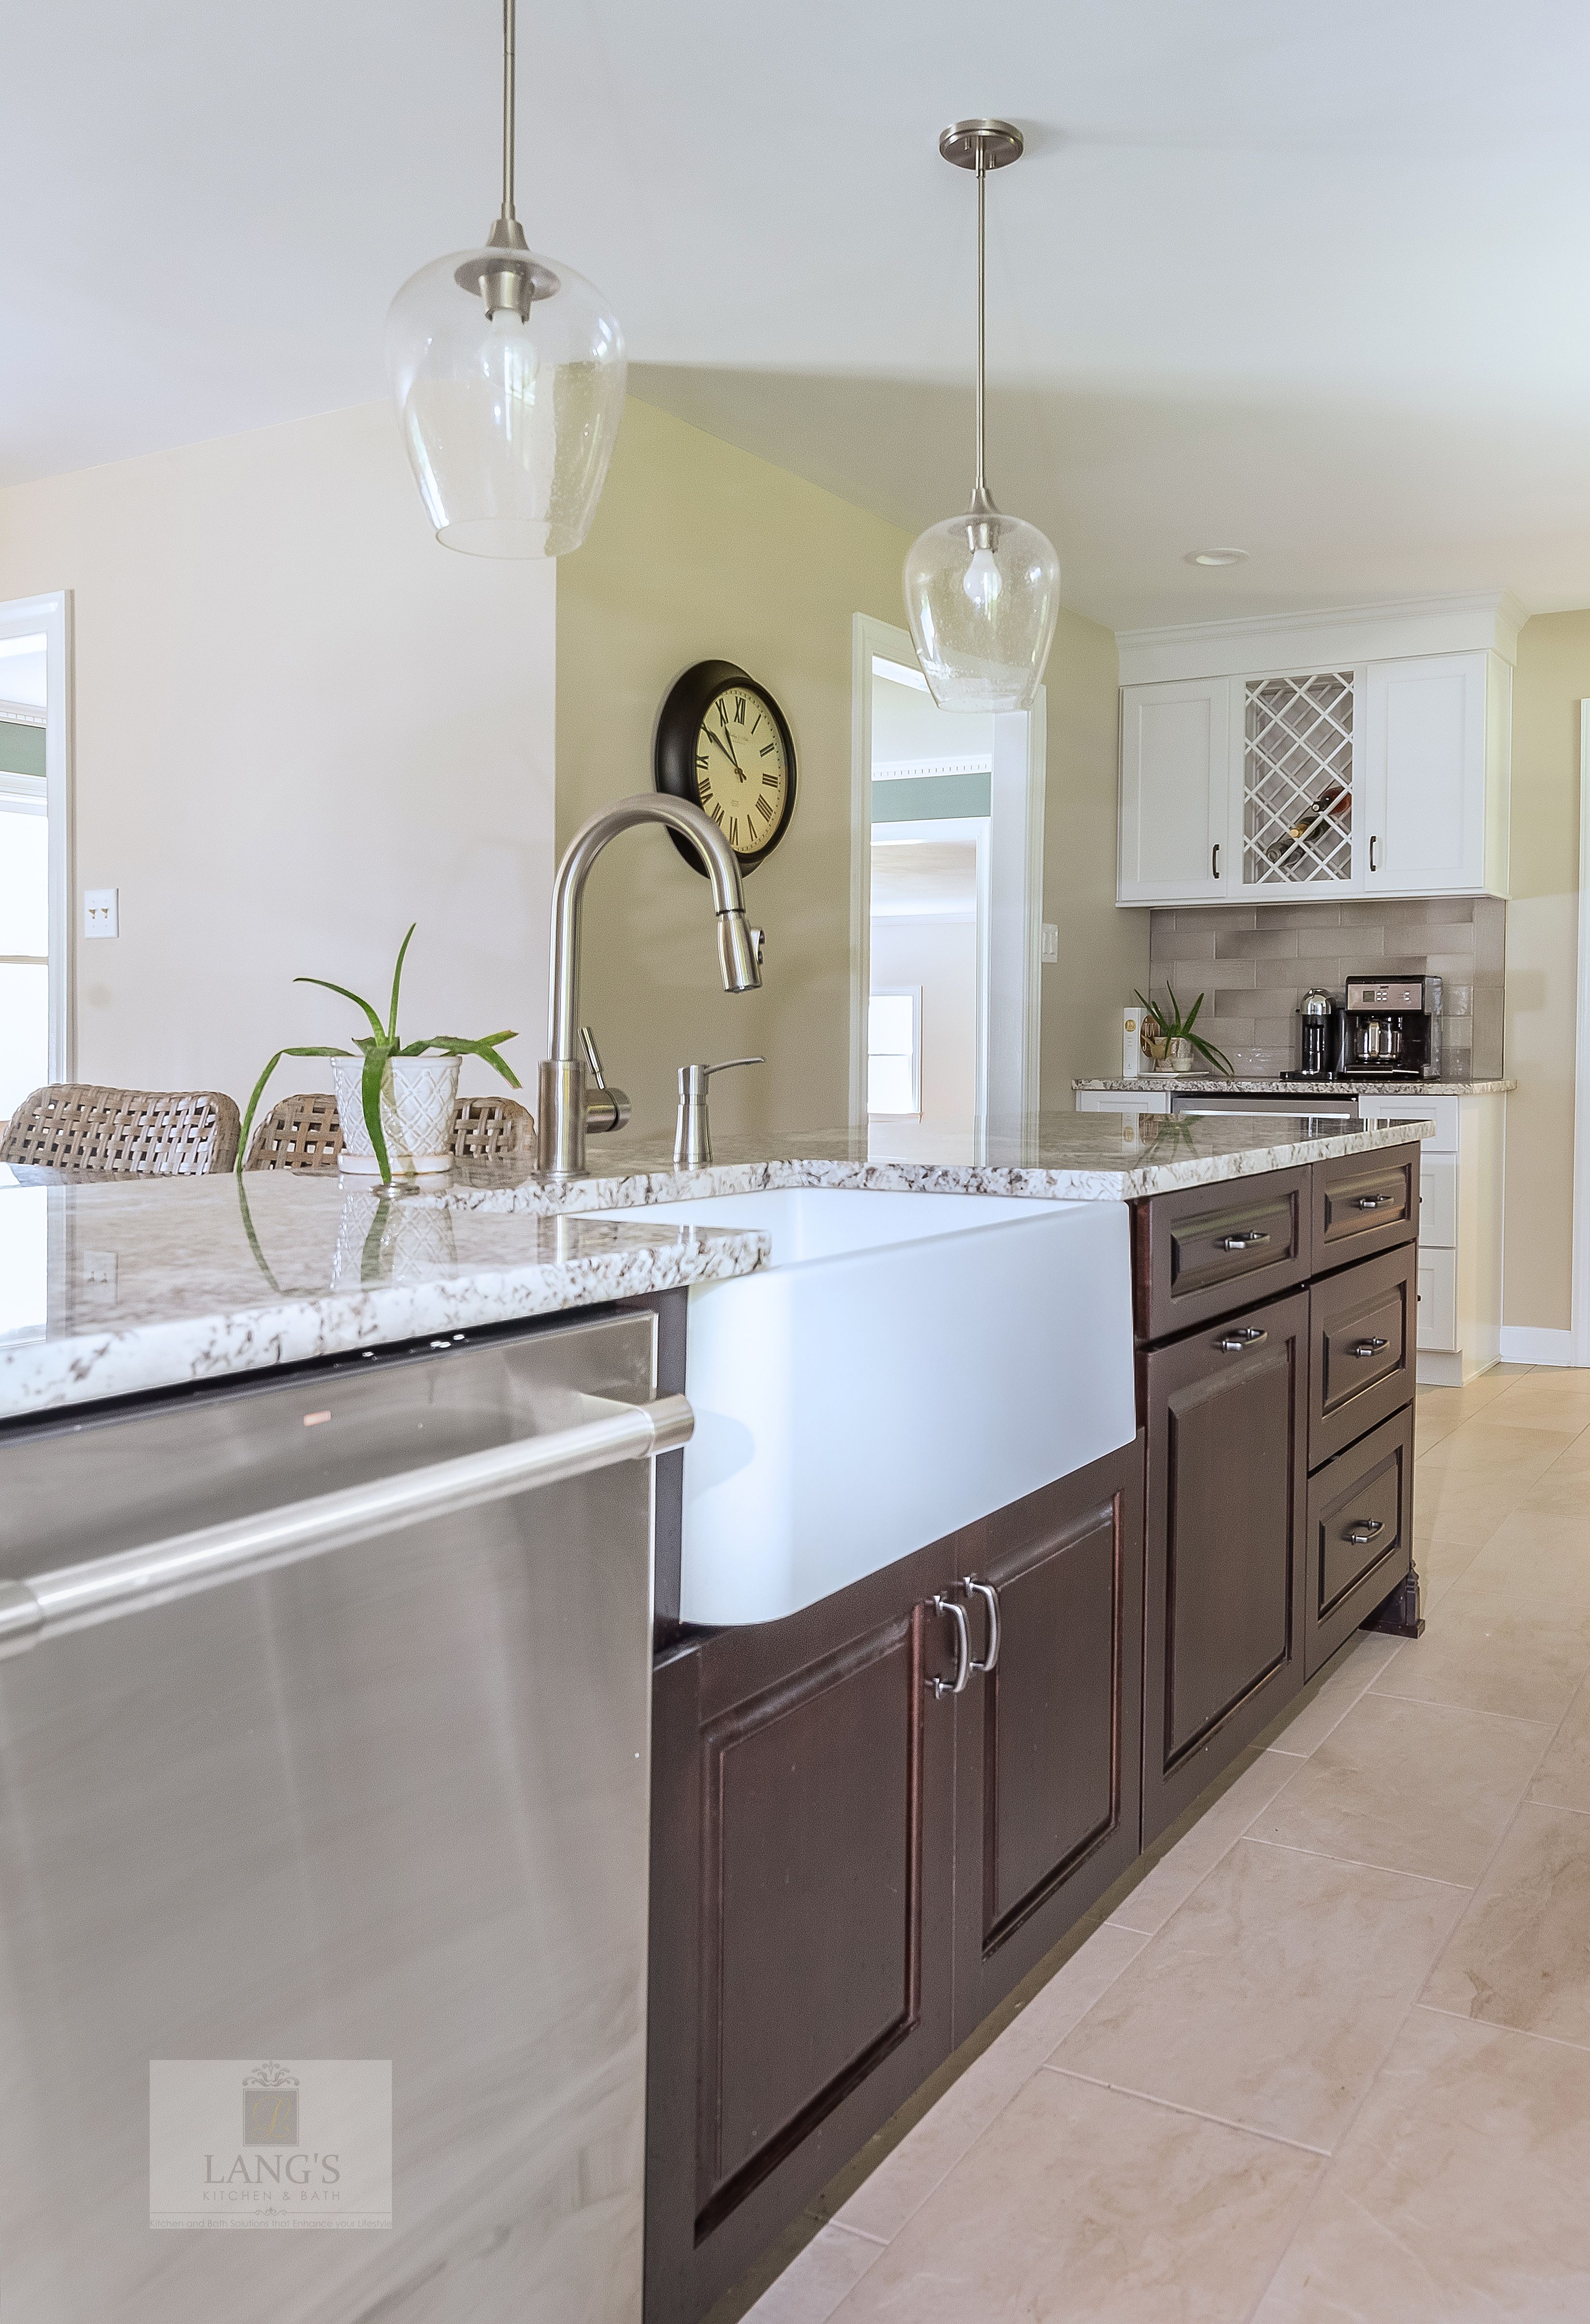 At The Heart Of This New Hope Pa Kitchen Design Is A Large T Shaped Island With Koch Cabinetry In A D Eclectic Kitchen Design Eclectic Kitchen Kitchen Design